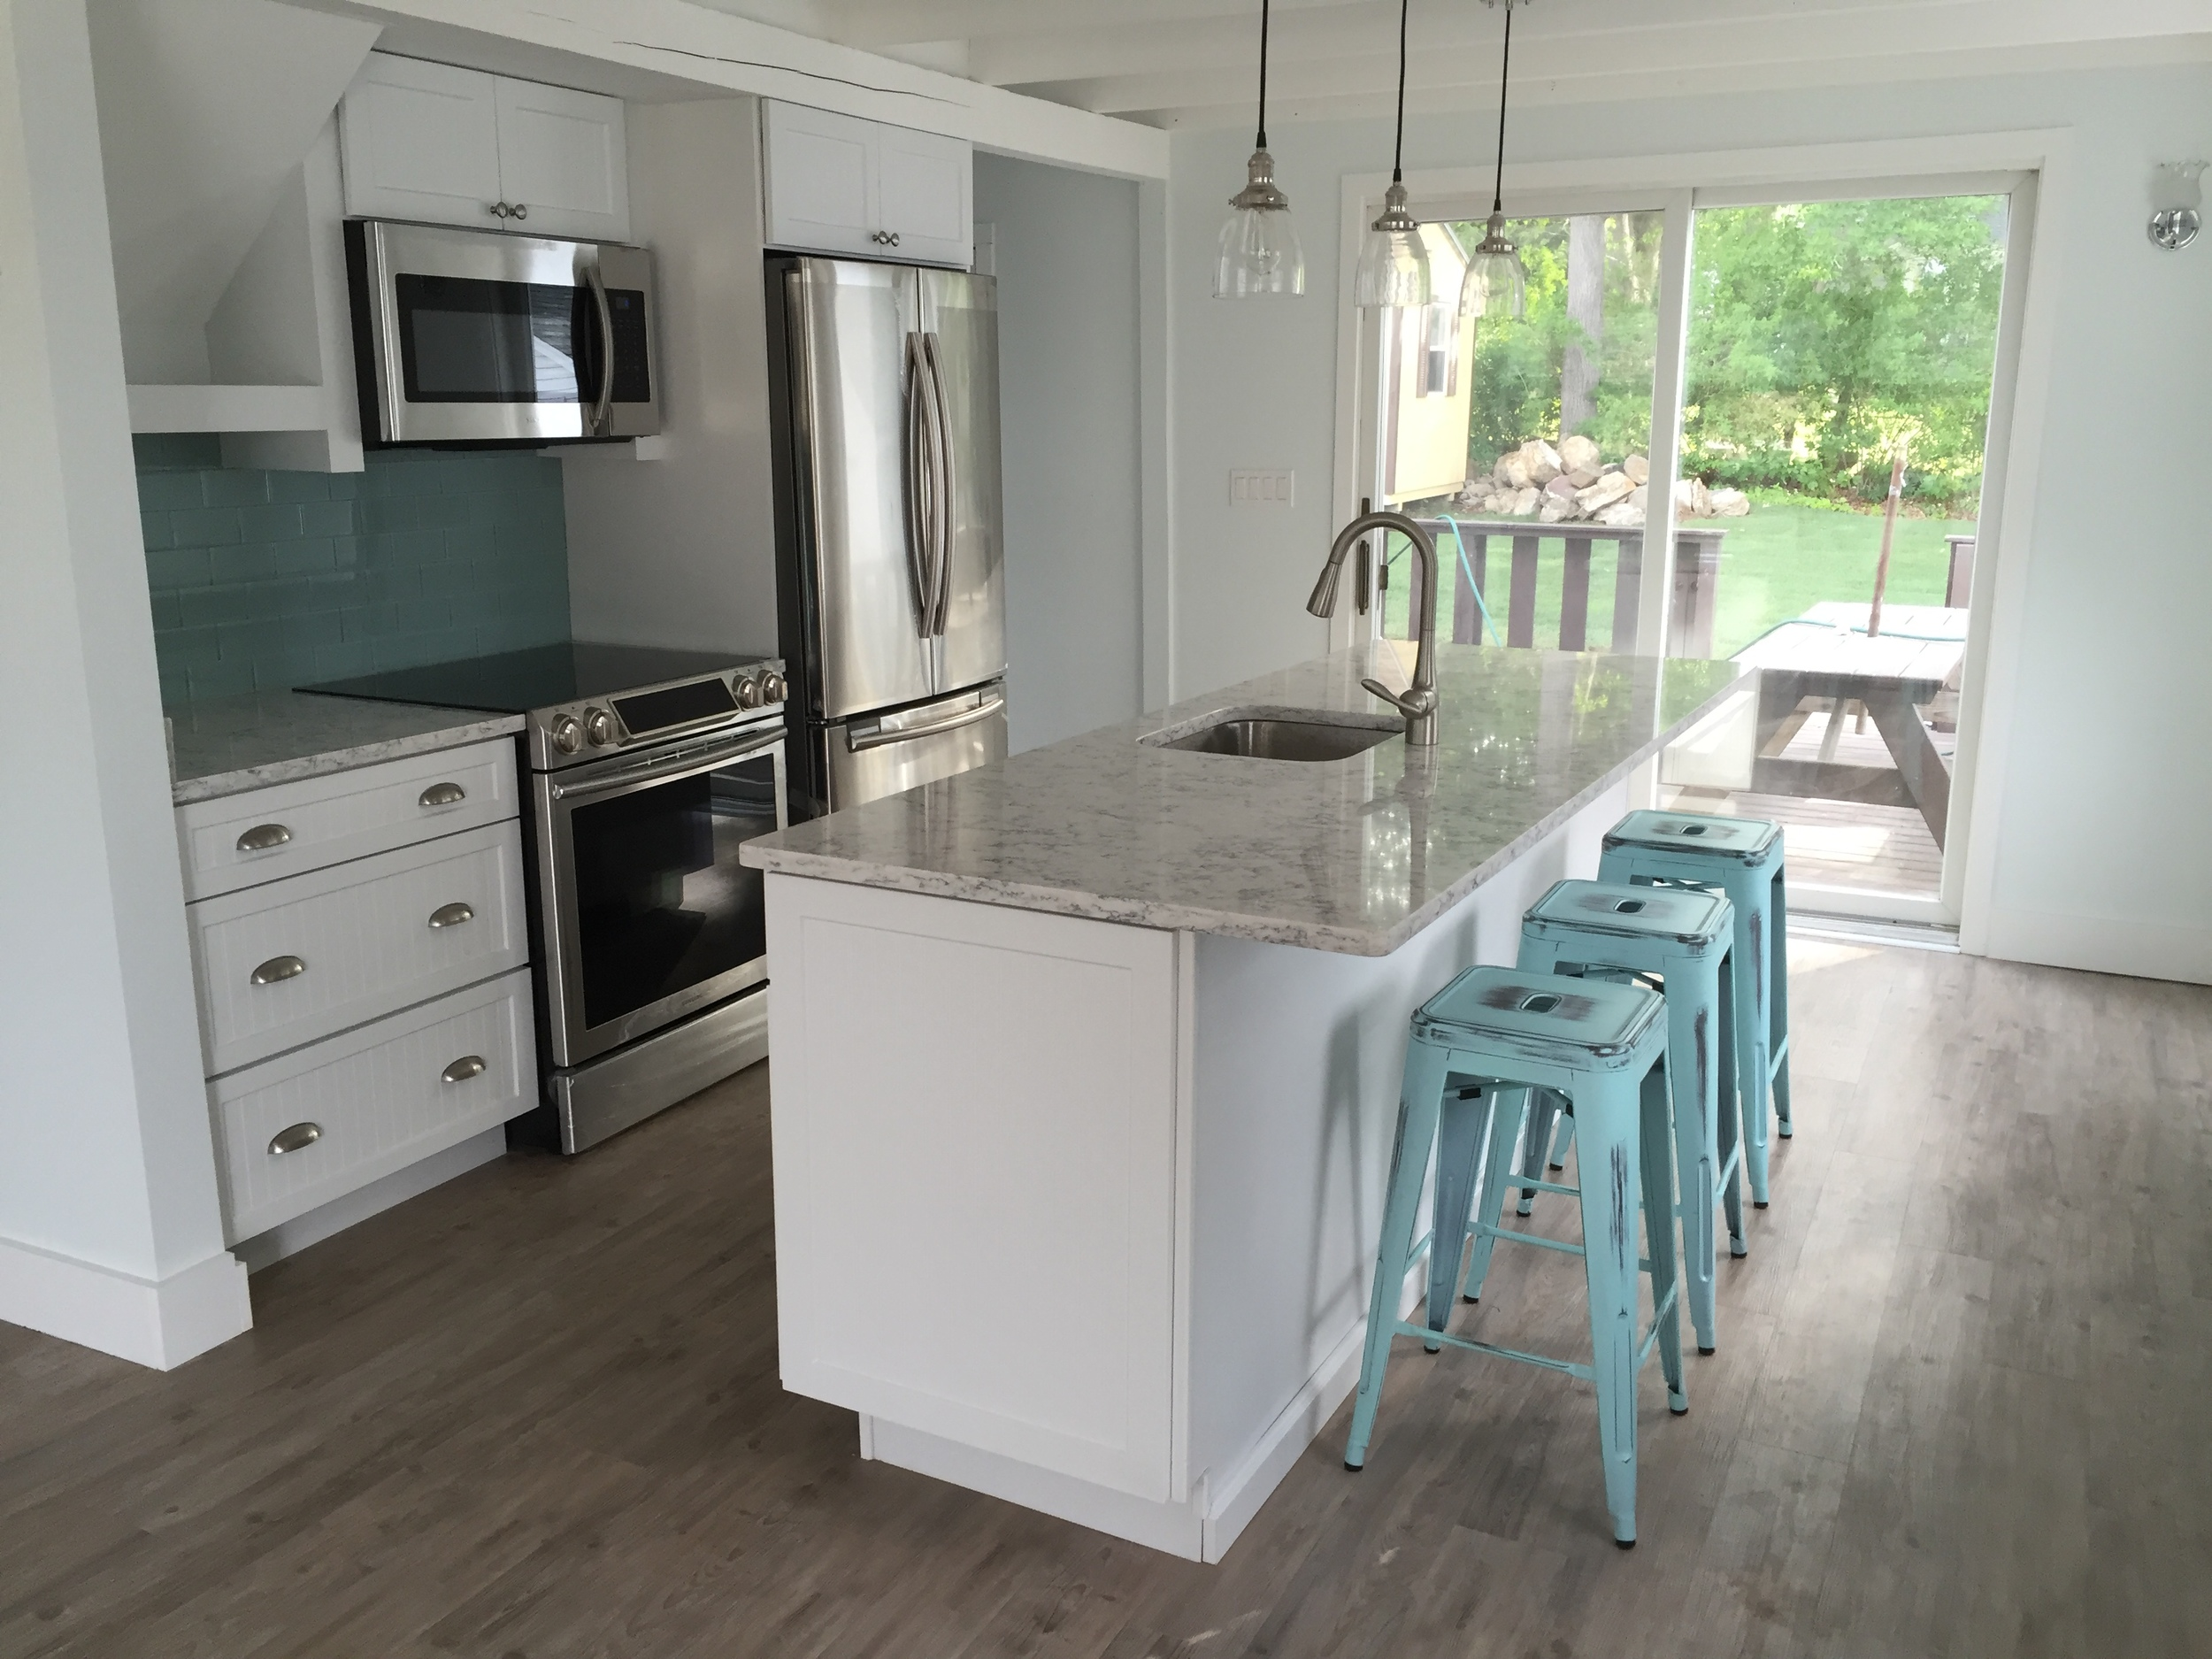 Entire Cottage Kitchen Remodel in Point of Woods Old Lyme CT | Shaw Remodeling